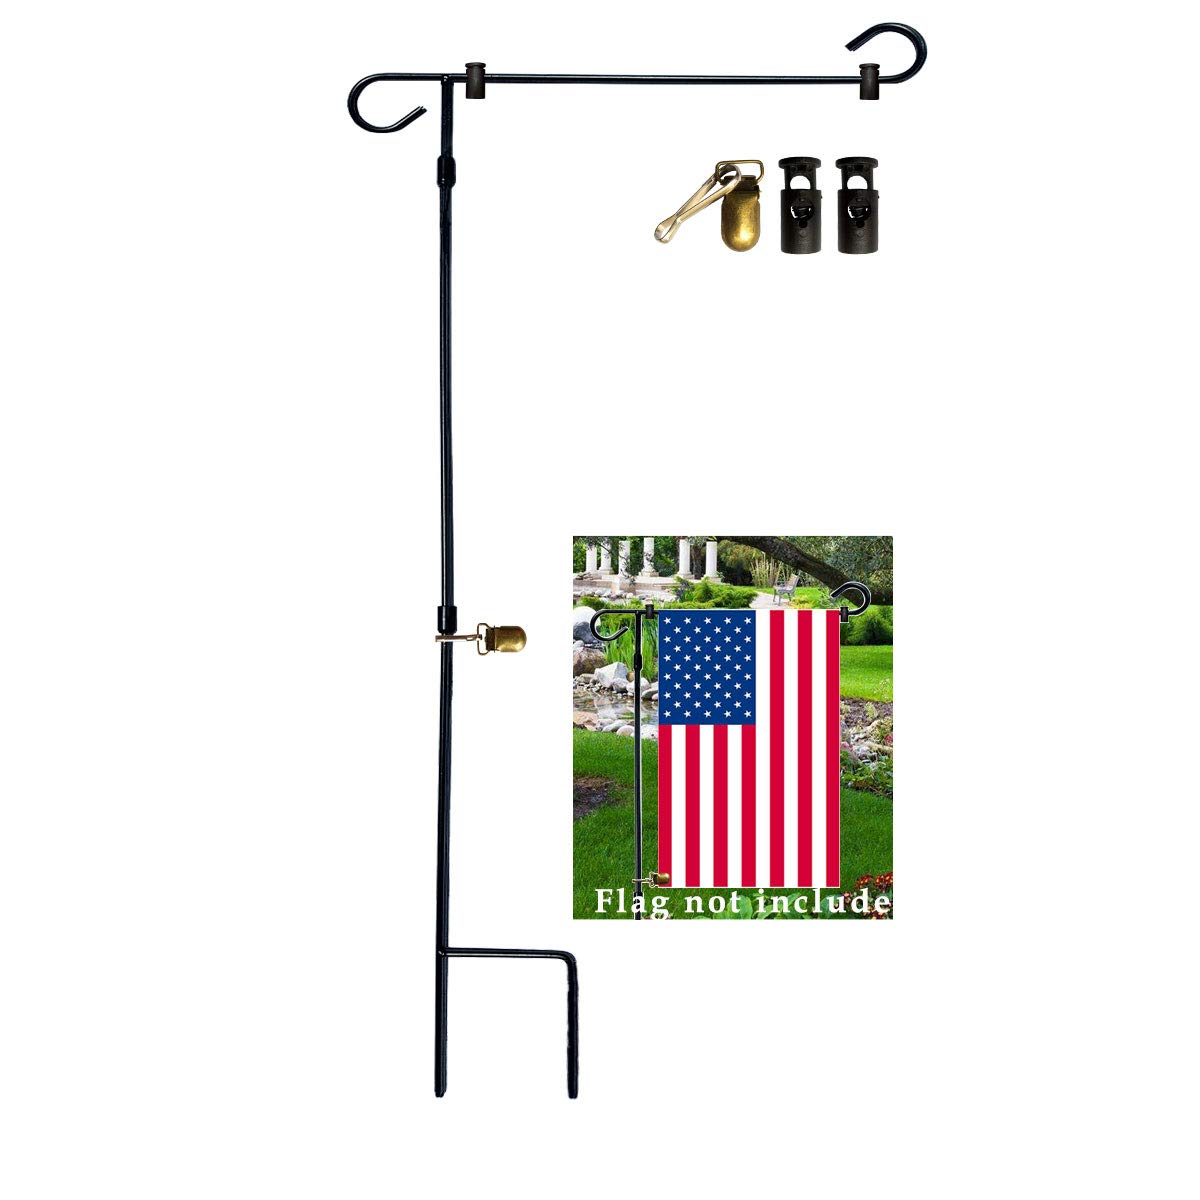 VIEKEY Garden Flag Stand-Pole-Holder with Flag 2 Stopper and 1 Clip 38 x 17.5 Inch Made of Iron and Coated Weather-Proof Paint